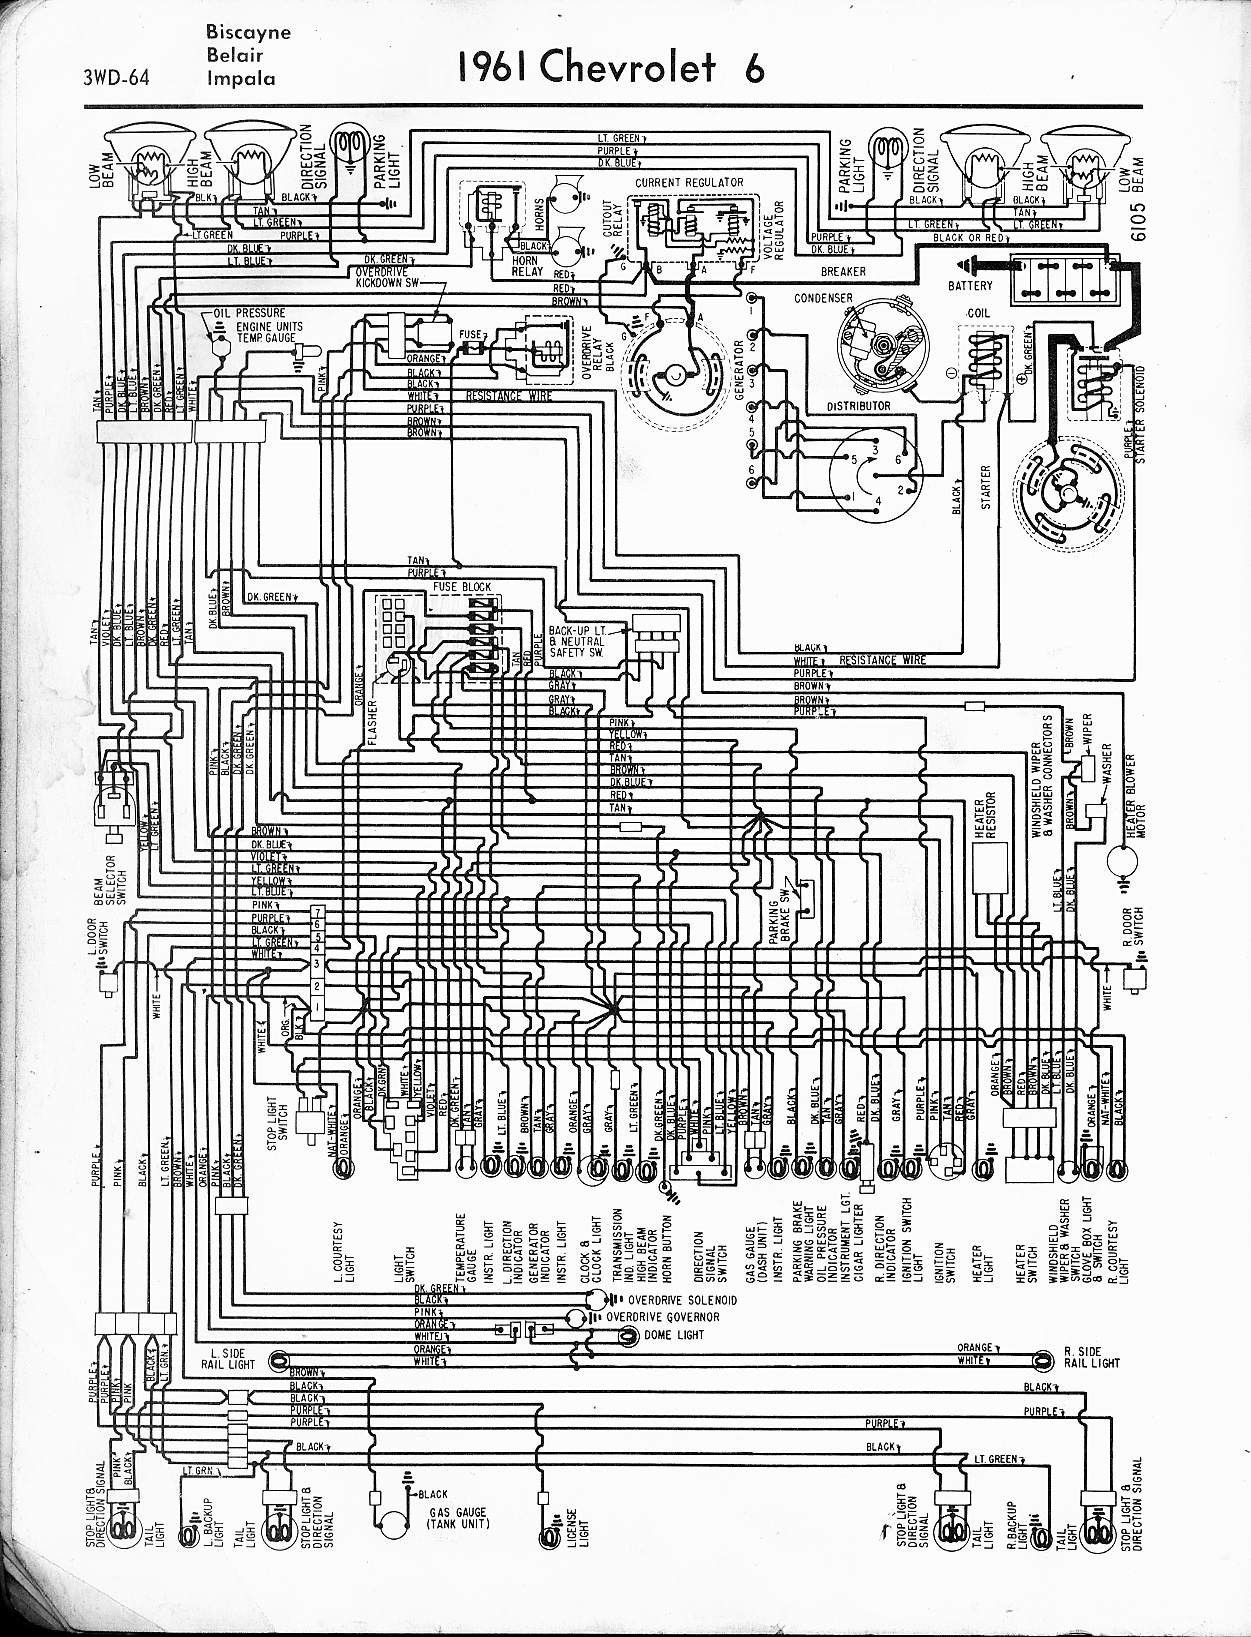 2000 Chevy Impala Engine Diagram Impala Ignition Coil Wiring Diagram on 1966 c10 chevy truck wiring diagrams, 1964 chevy truck wiring diagram, 1964 chevy impala fuse box,